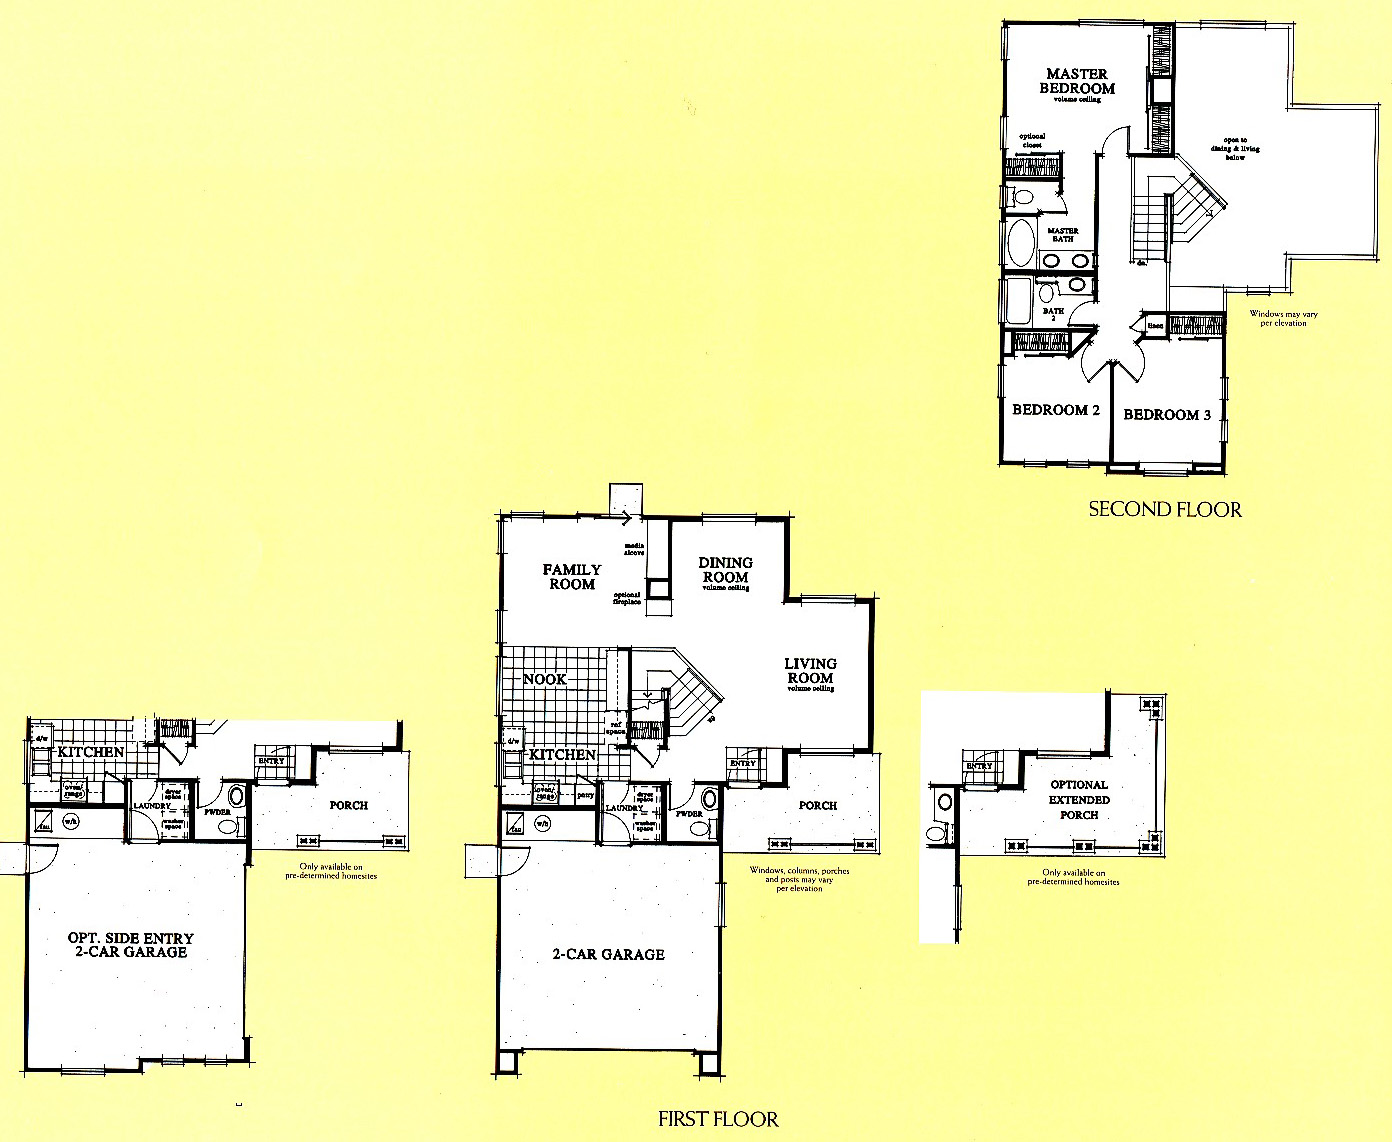 California mountain view floor plans livermore homes ca for Mountain view floor plans